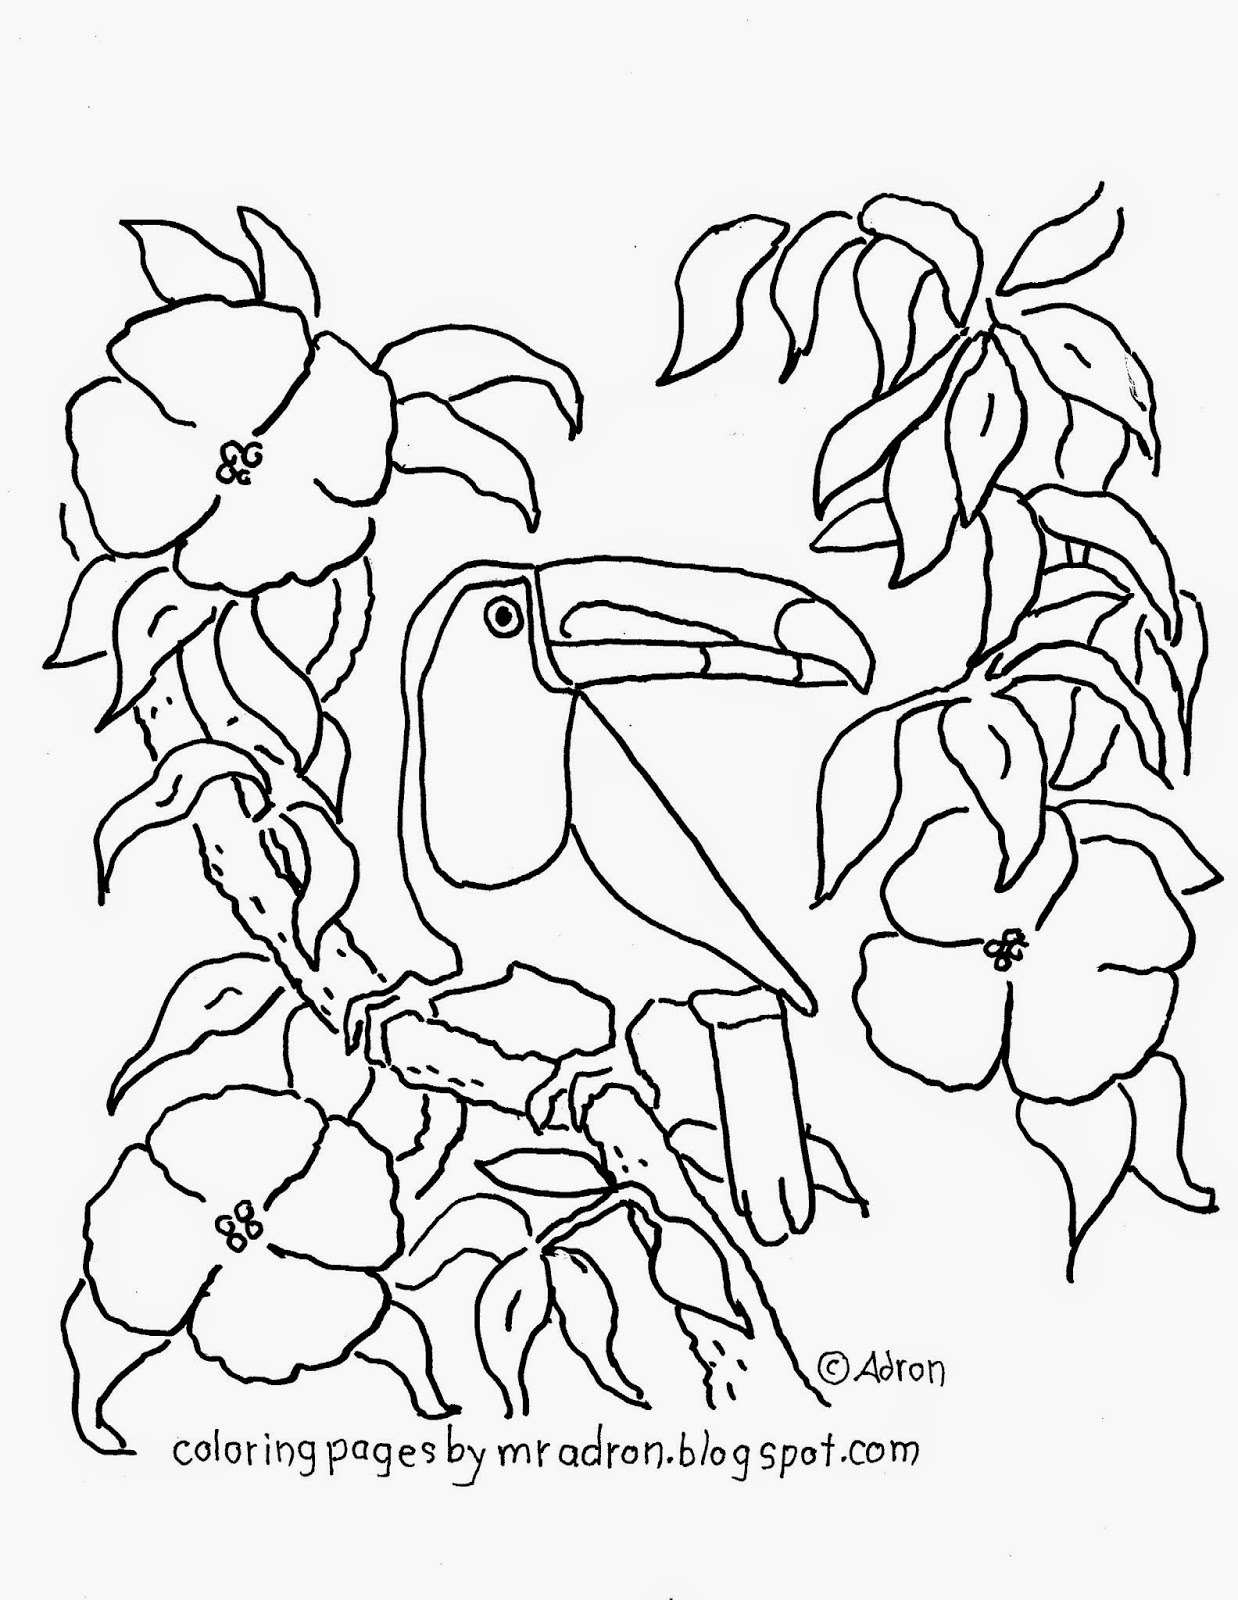 coloring pages for kids by mr adron free printable toucan